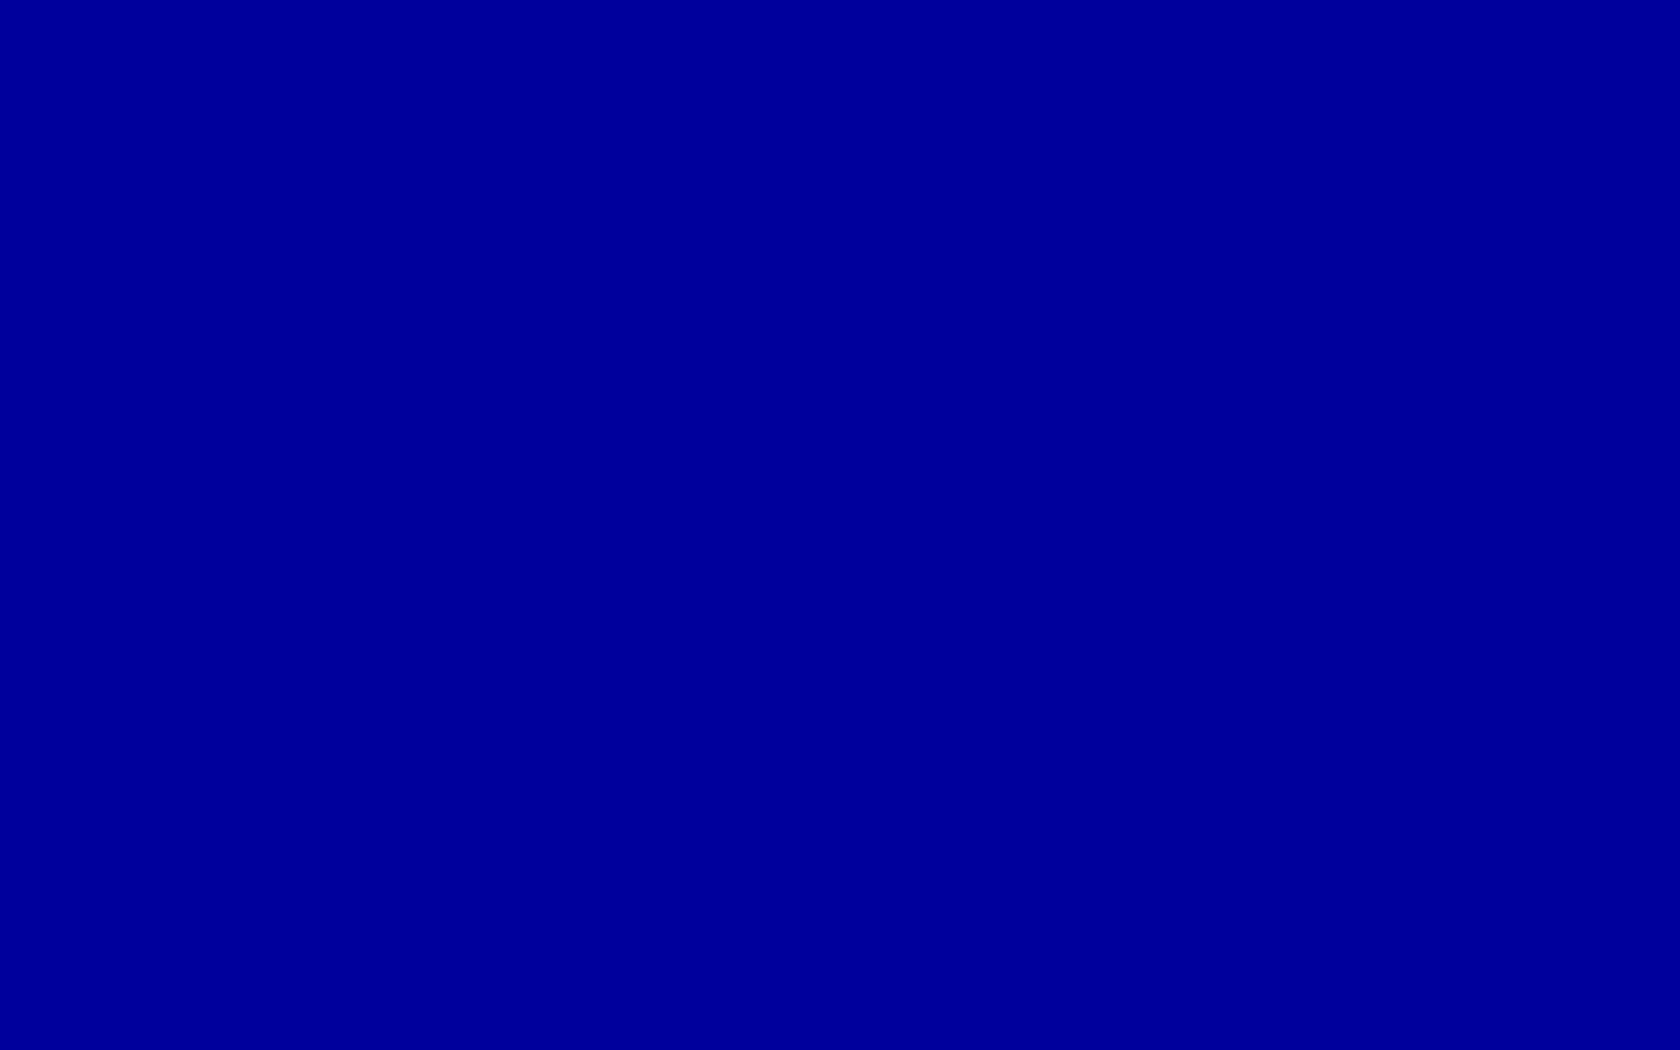 1680x1050 Duke Blue Solid Color Background